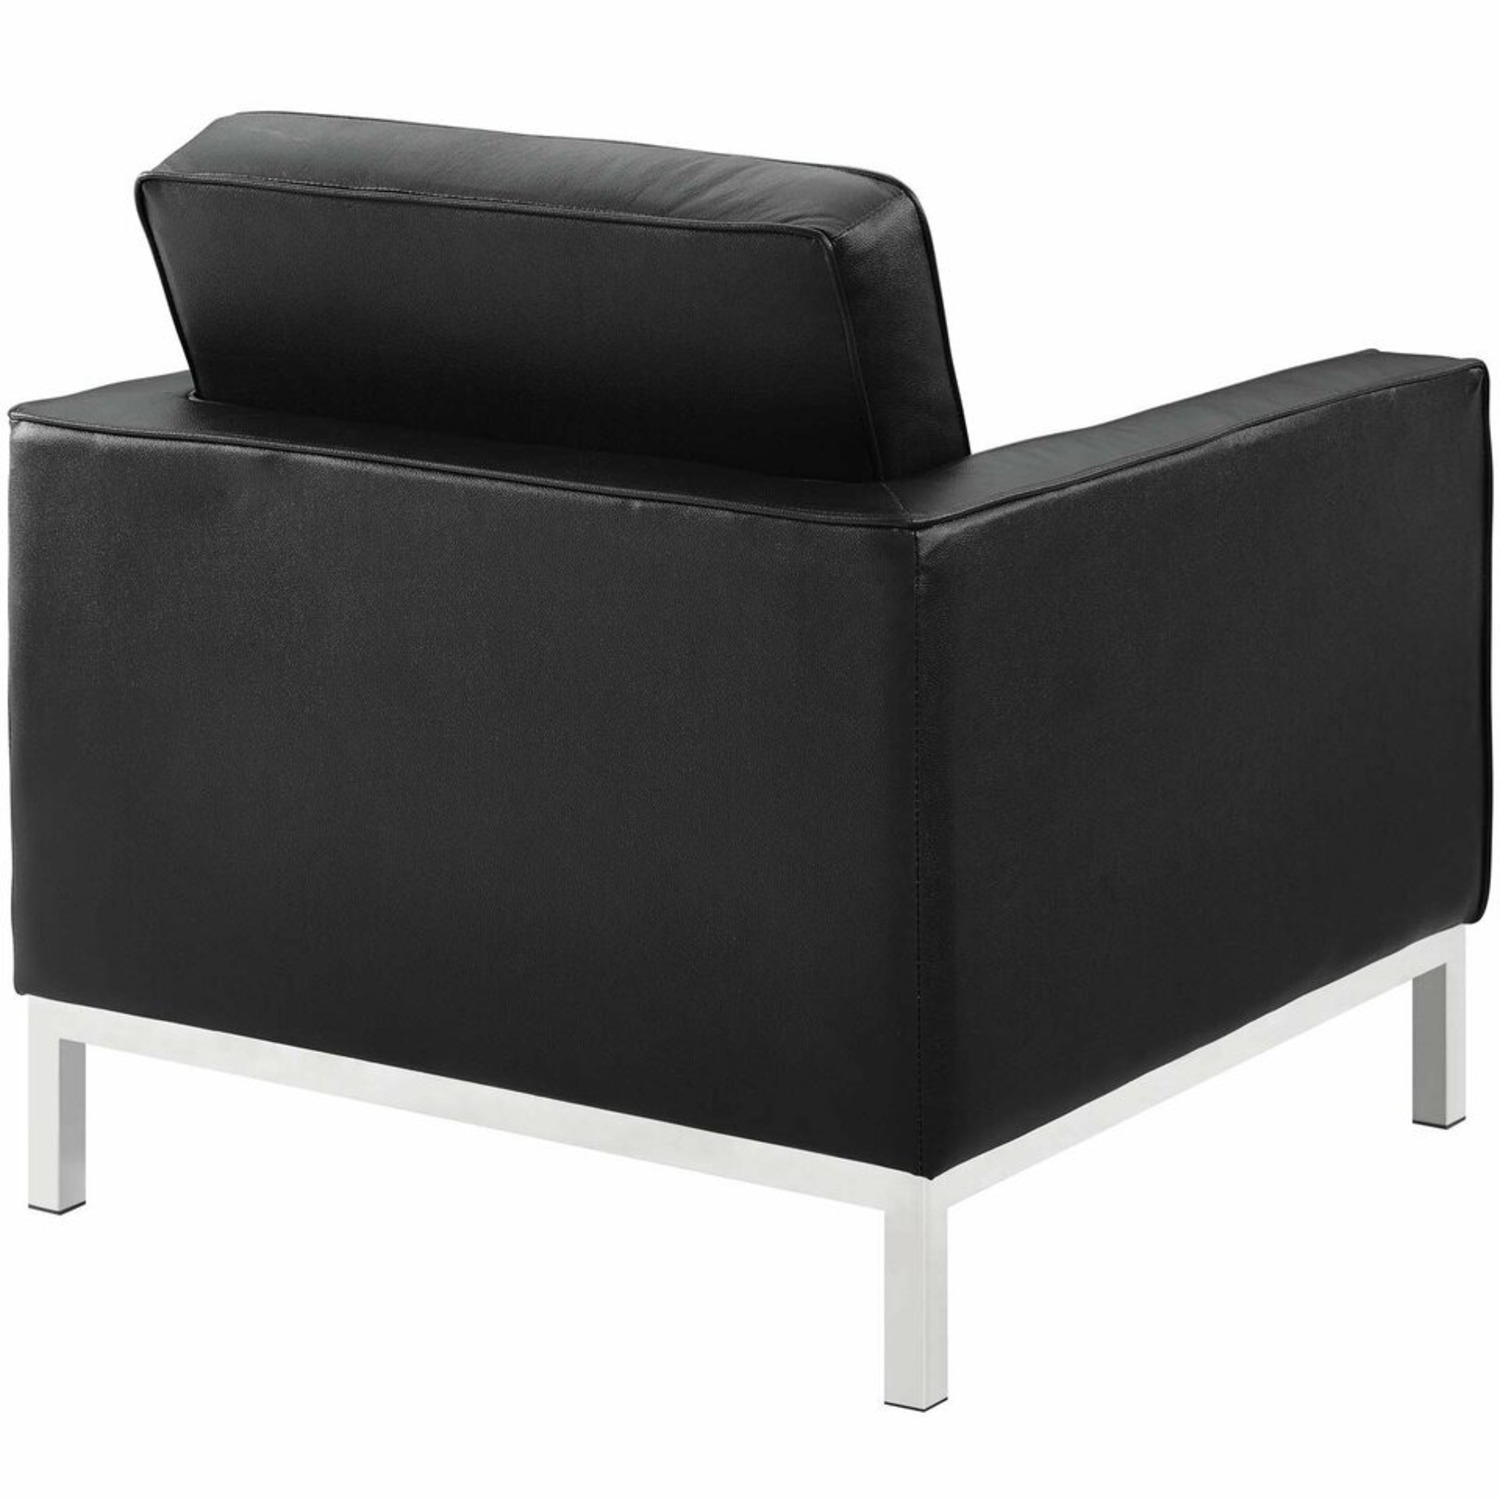 Modern Armchair In Black Leather W/ Tufted Buttons - image-2